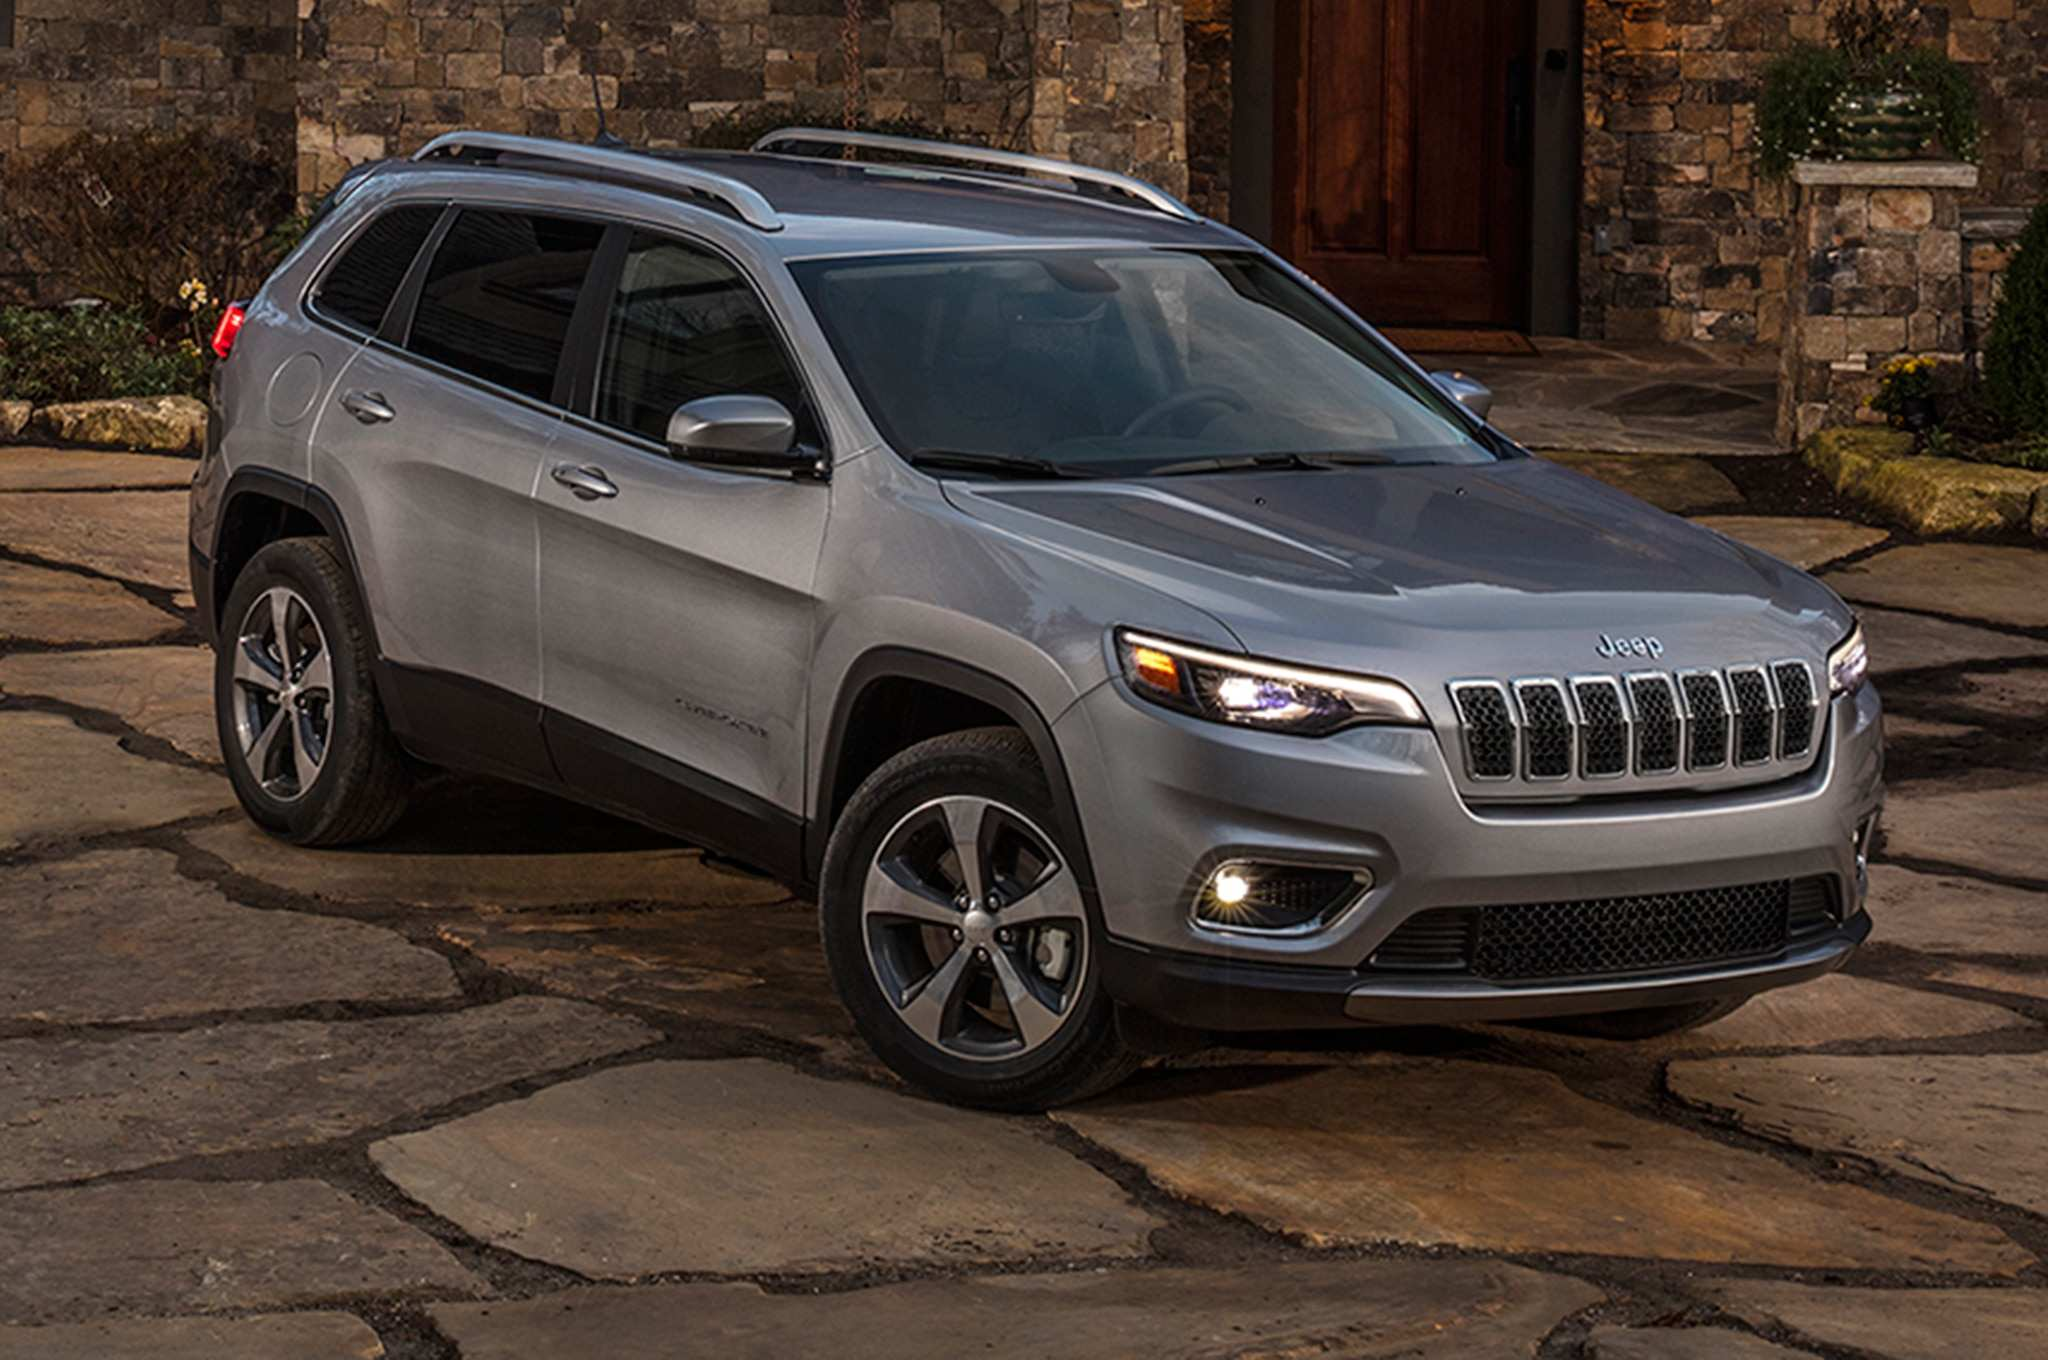 81 New Best Cherokee Jeep 2019 Redesign And Concept Spesification for Best Cherokee Jeep 2019 Redesign And Concept